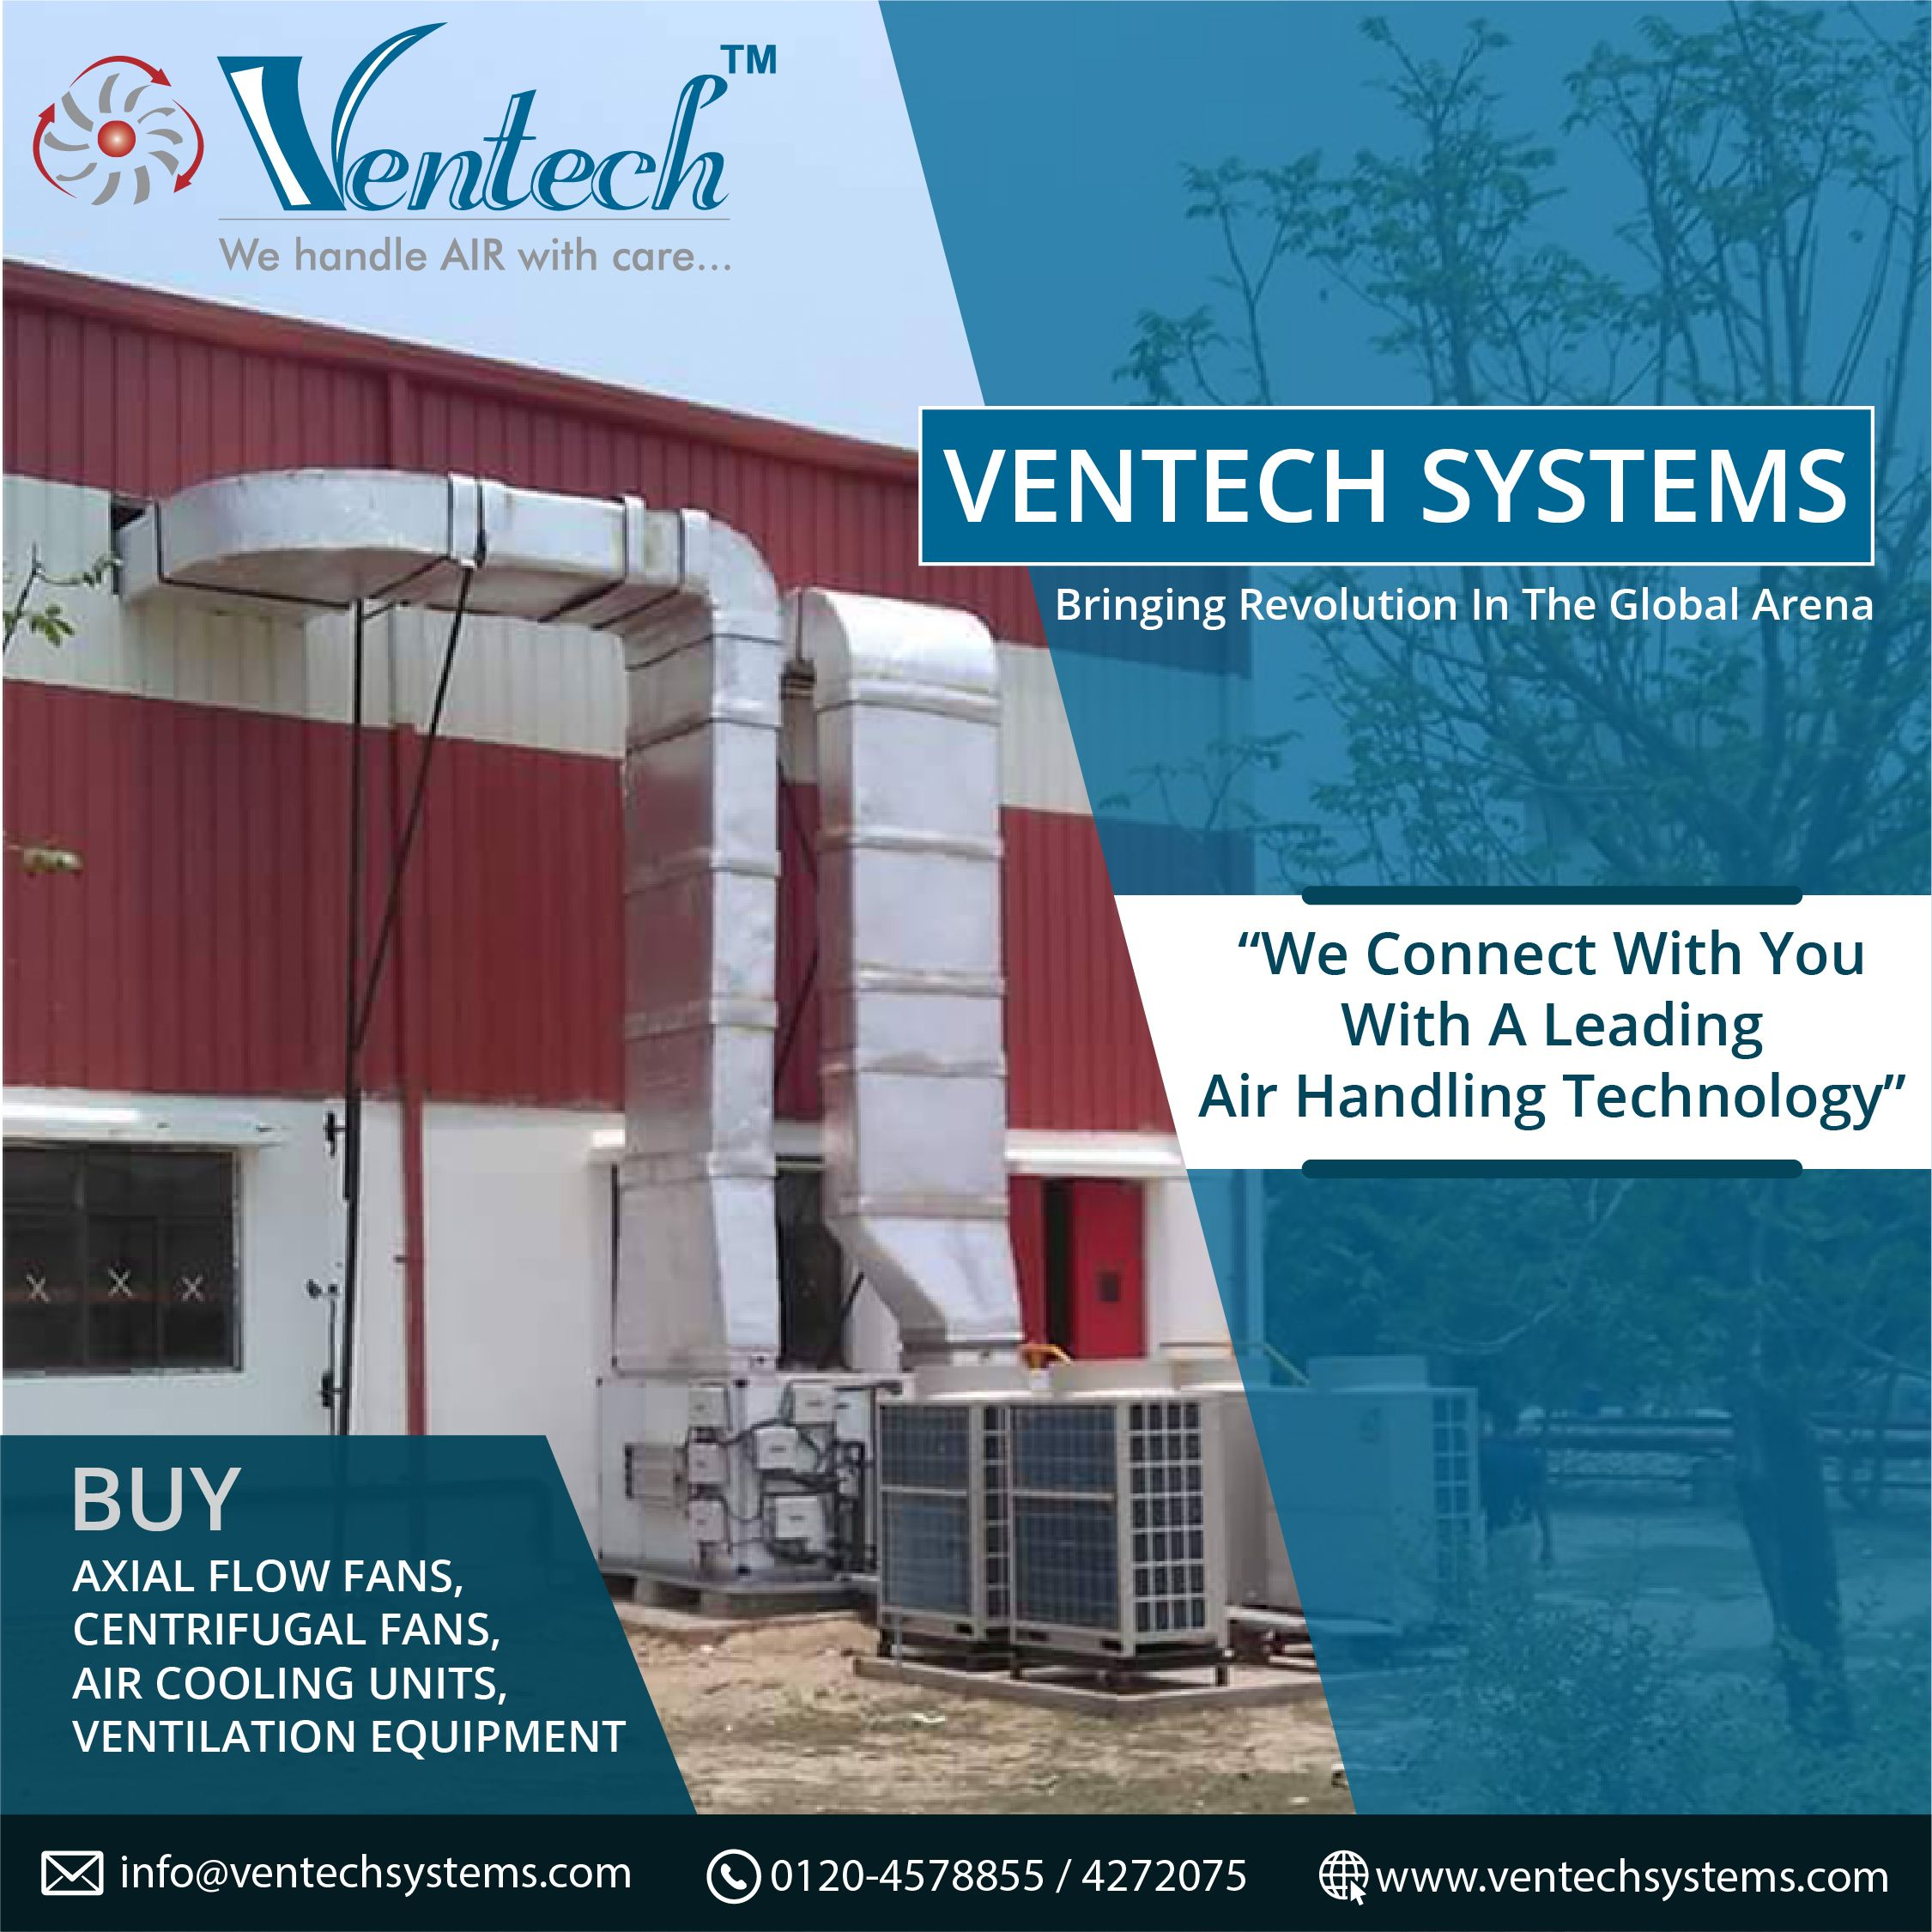 Ventech System has been continuously active in improvising